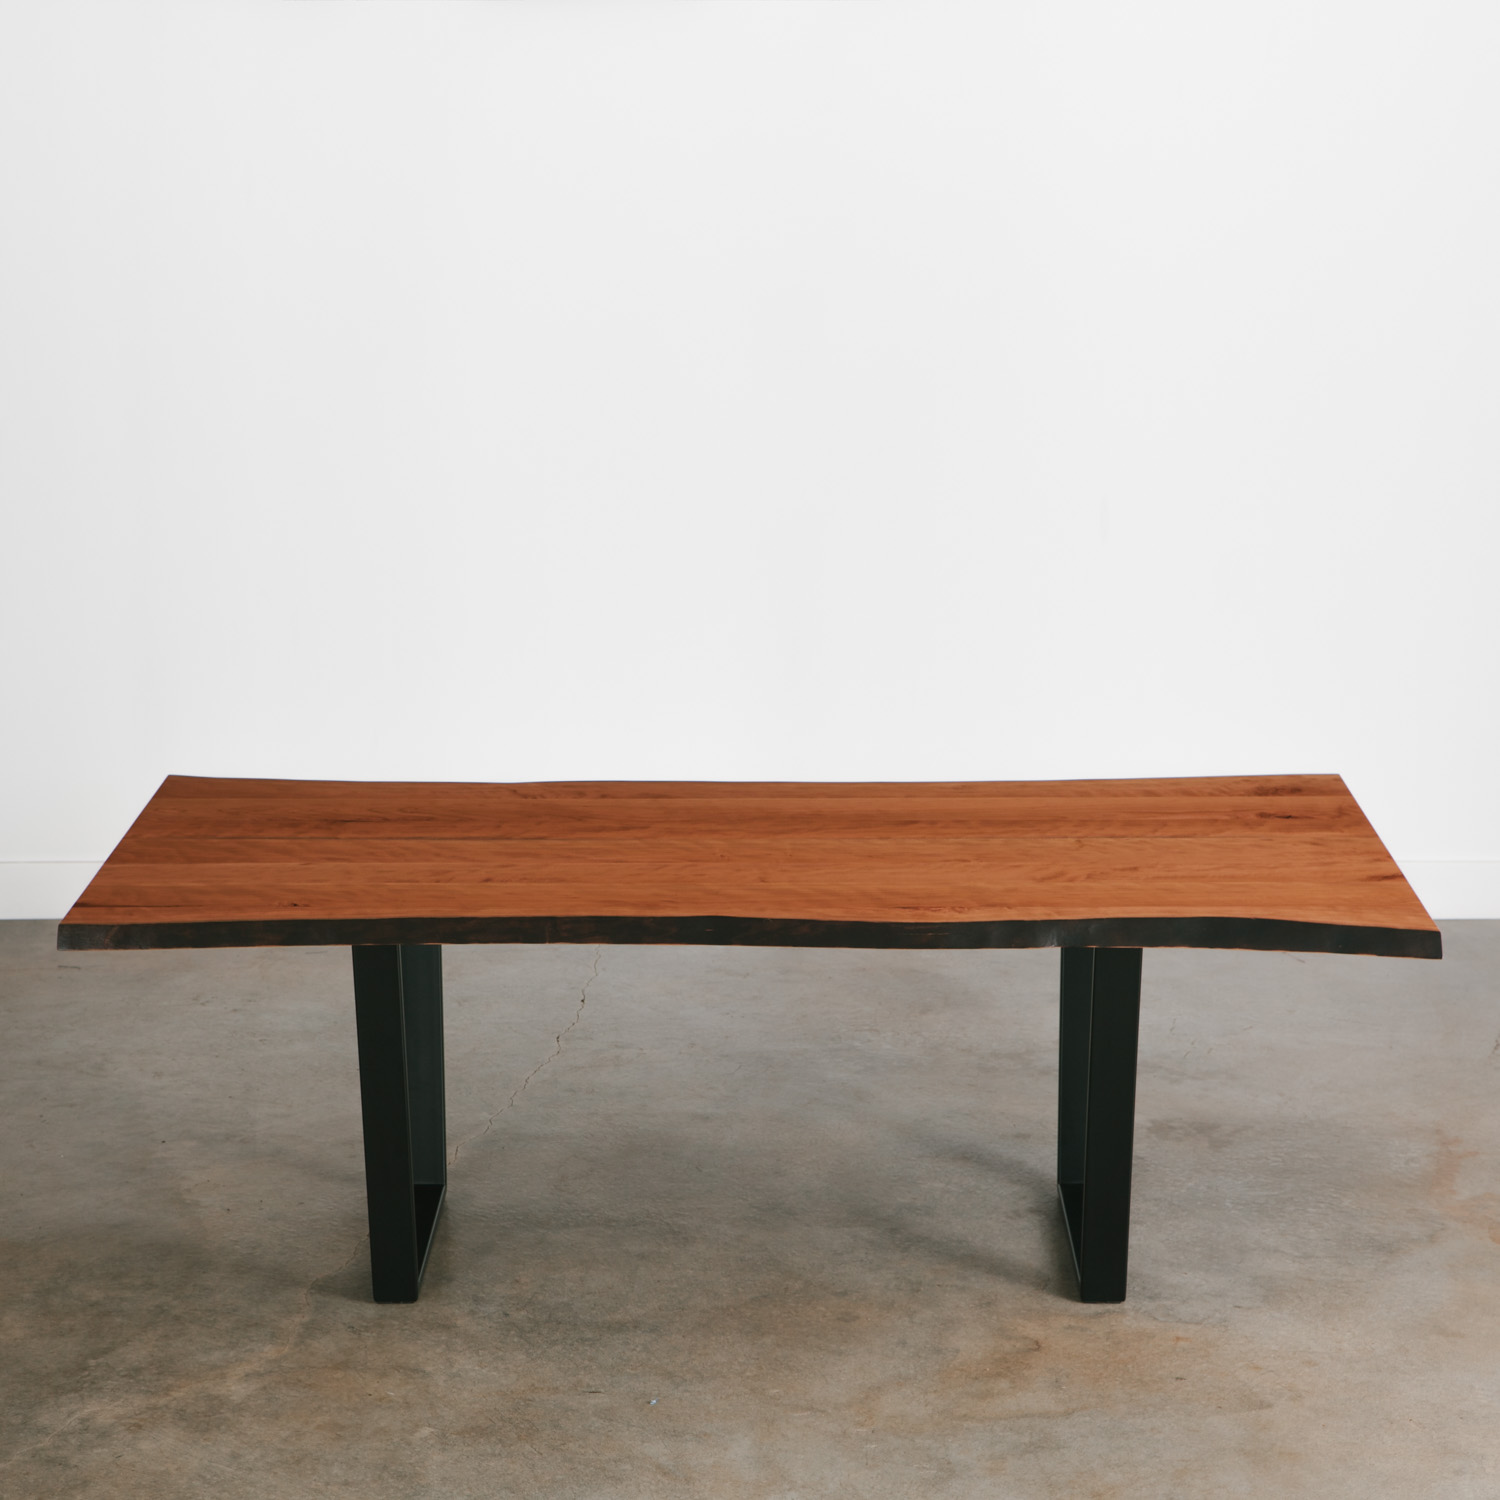 Cherry slab table with steel legs